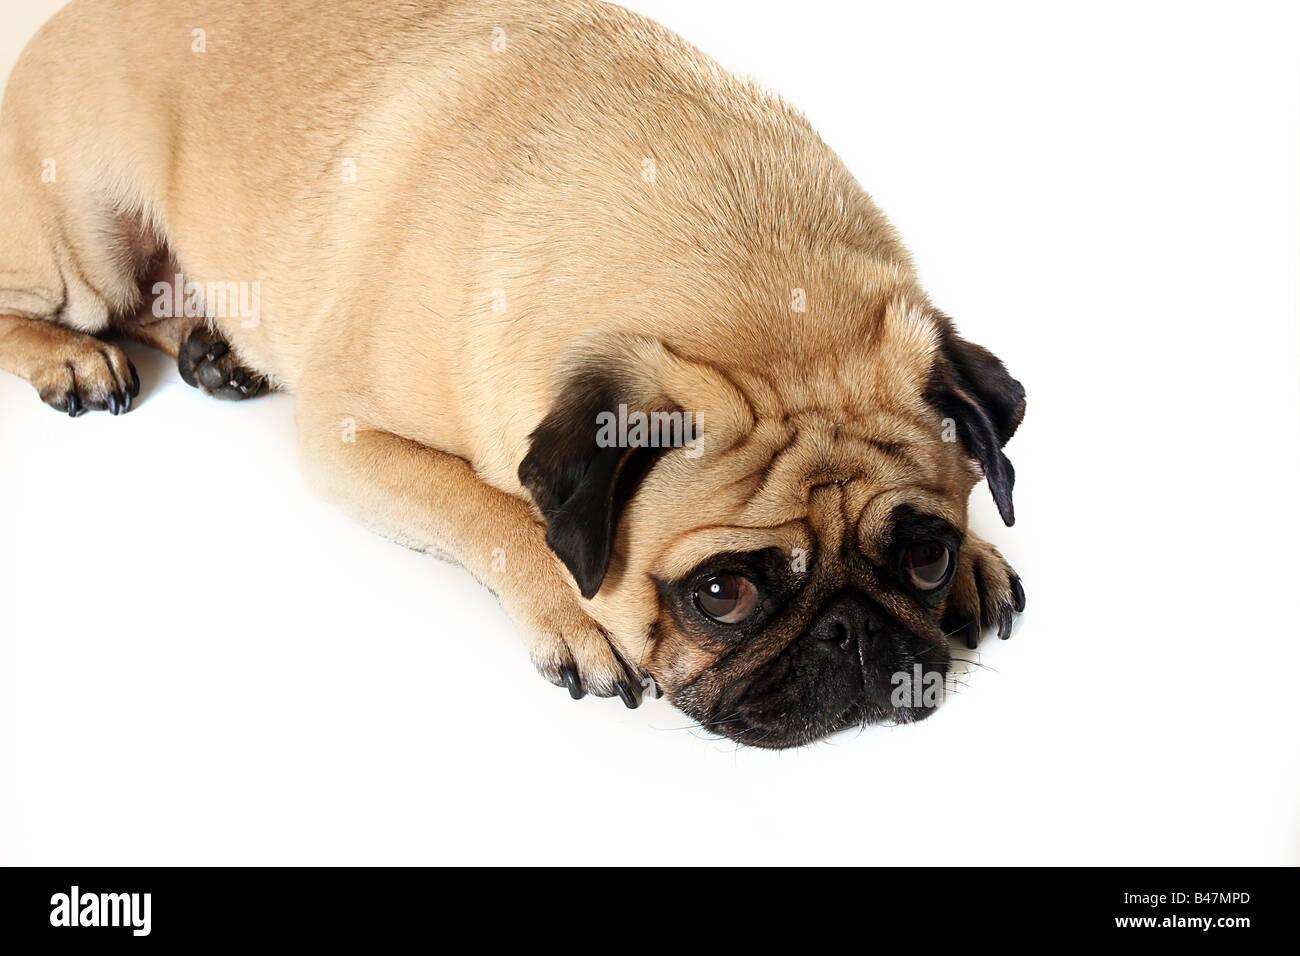 Closeup of a lonely Pug. - Stock Image